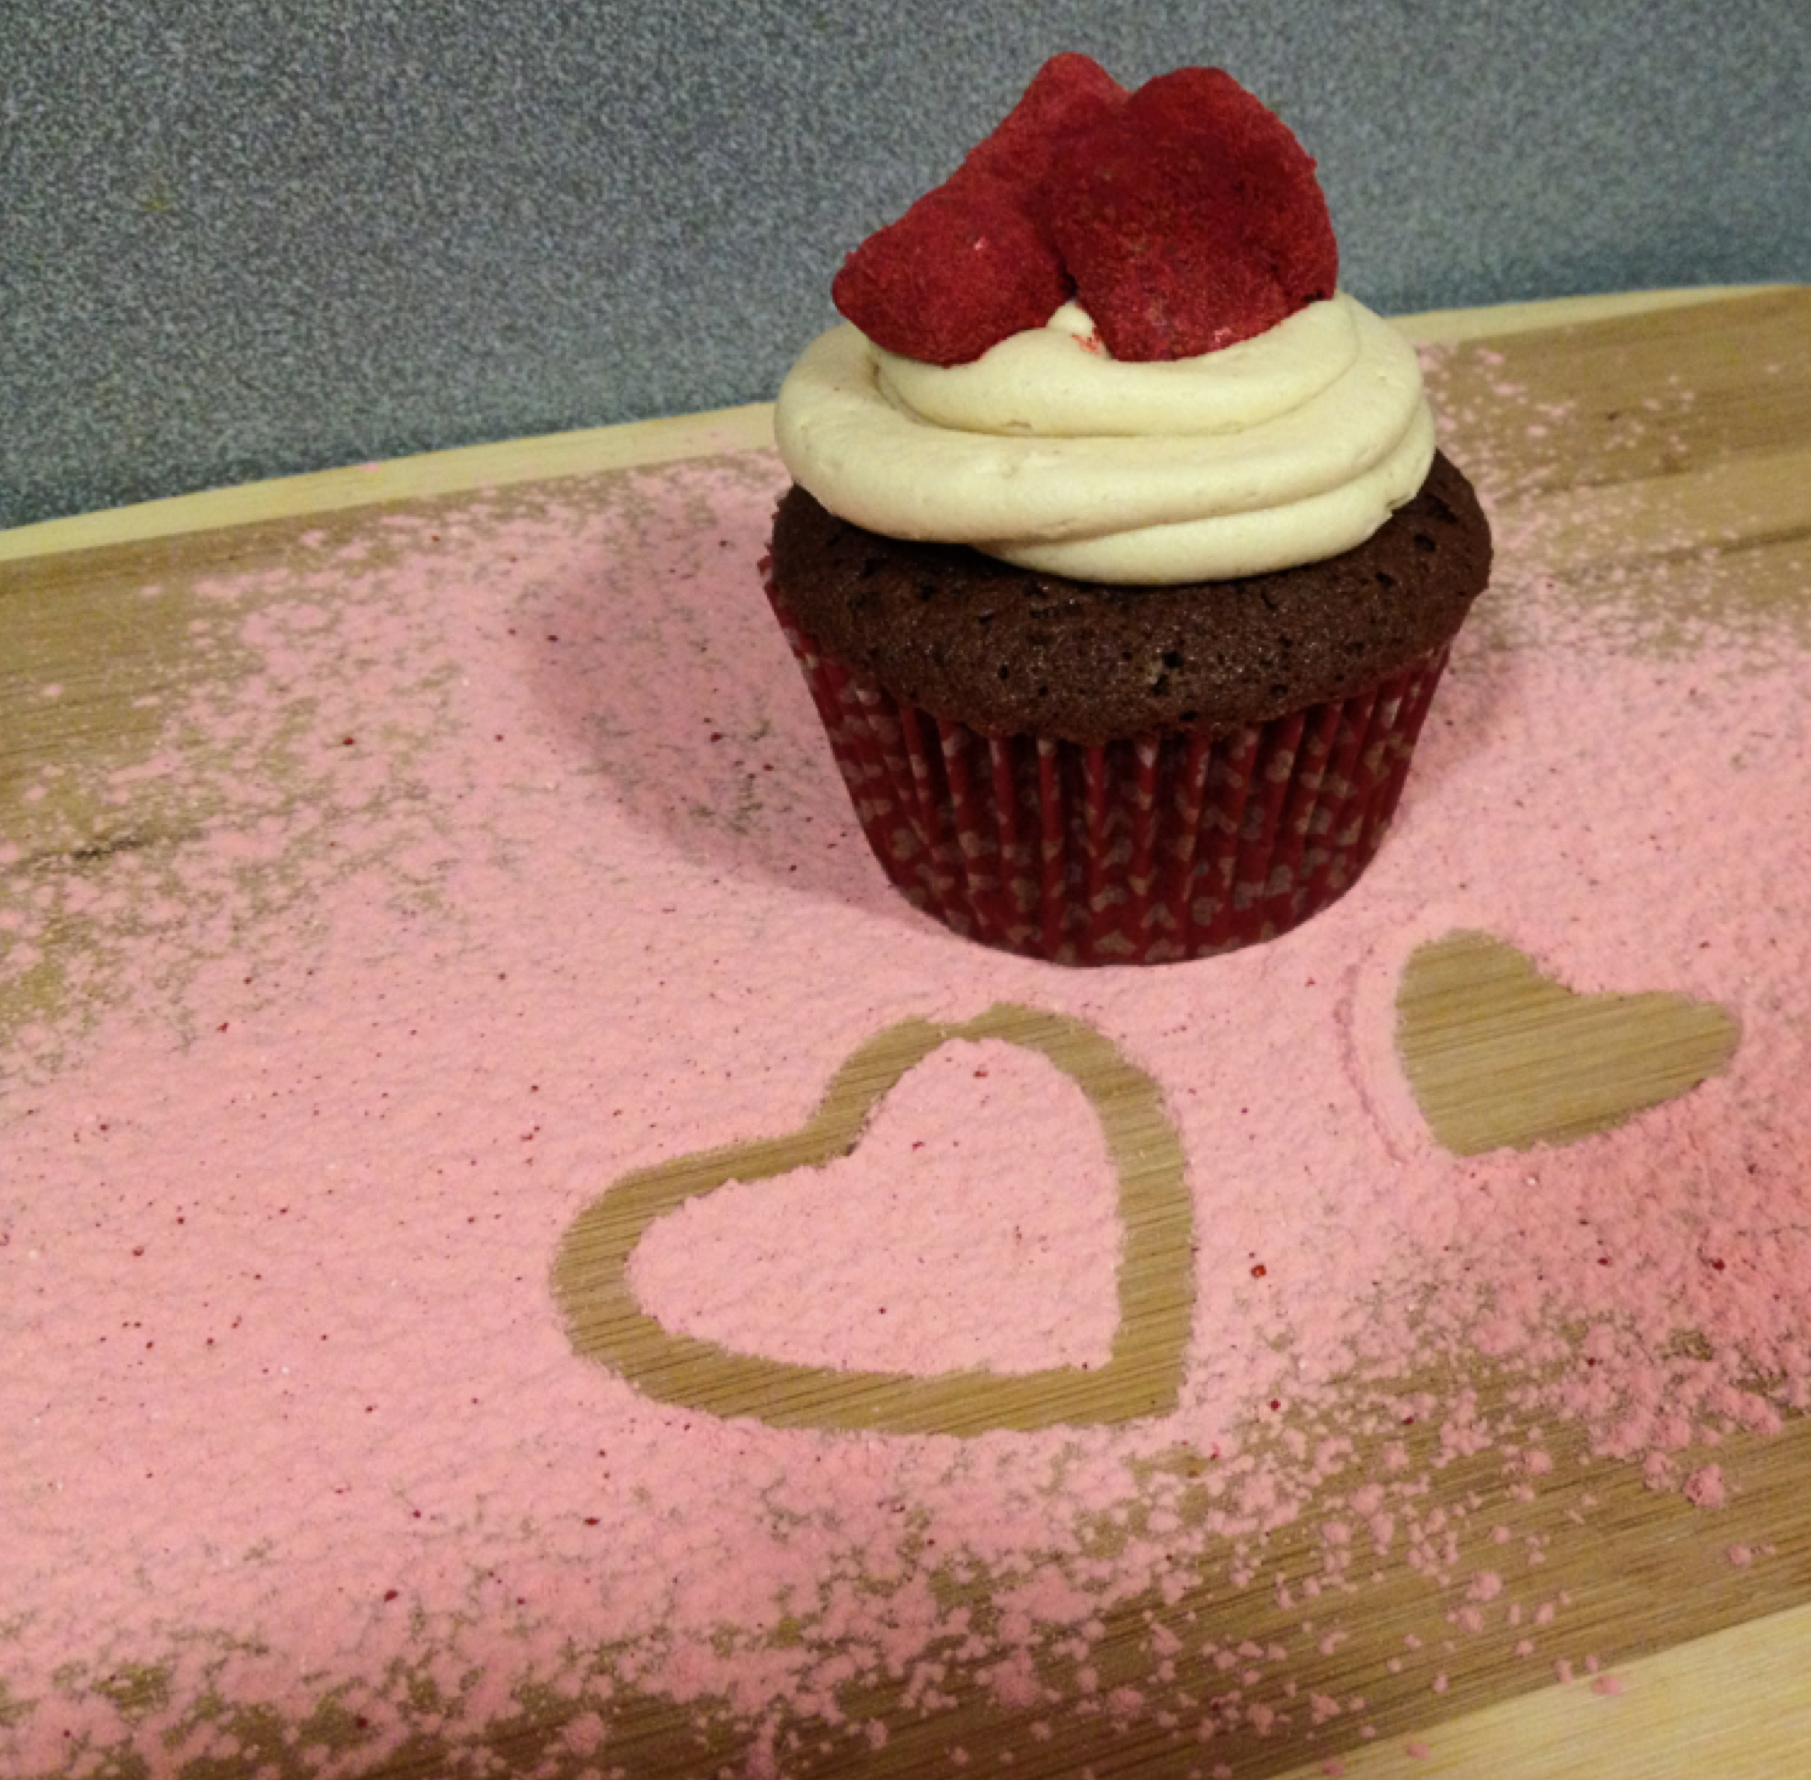 red velvet puppy chow, red velvet muddy buddies, red velvet cupcakes, peanut butter buttercream frosting, chocolate cakes, desserts, valentine's day, valentines dessert recipes, food, recipes